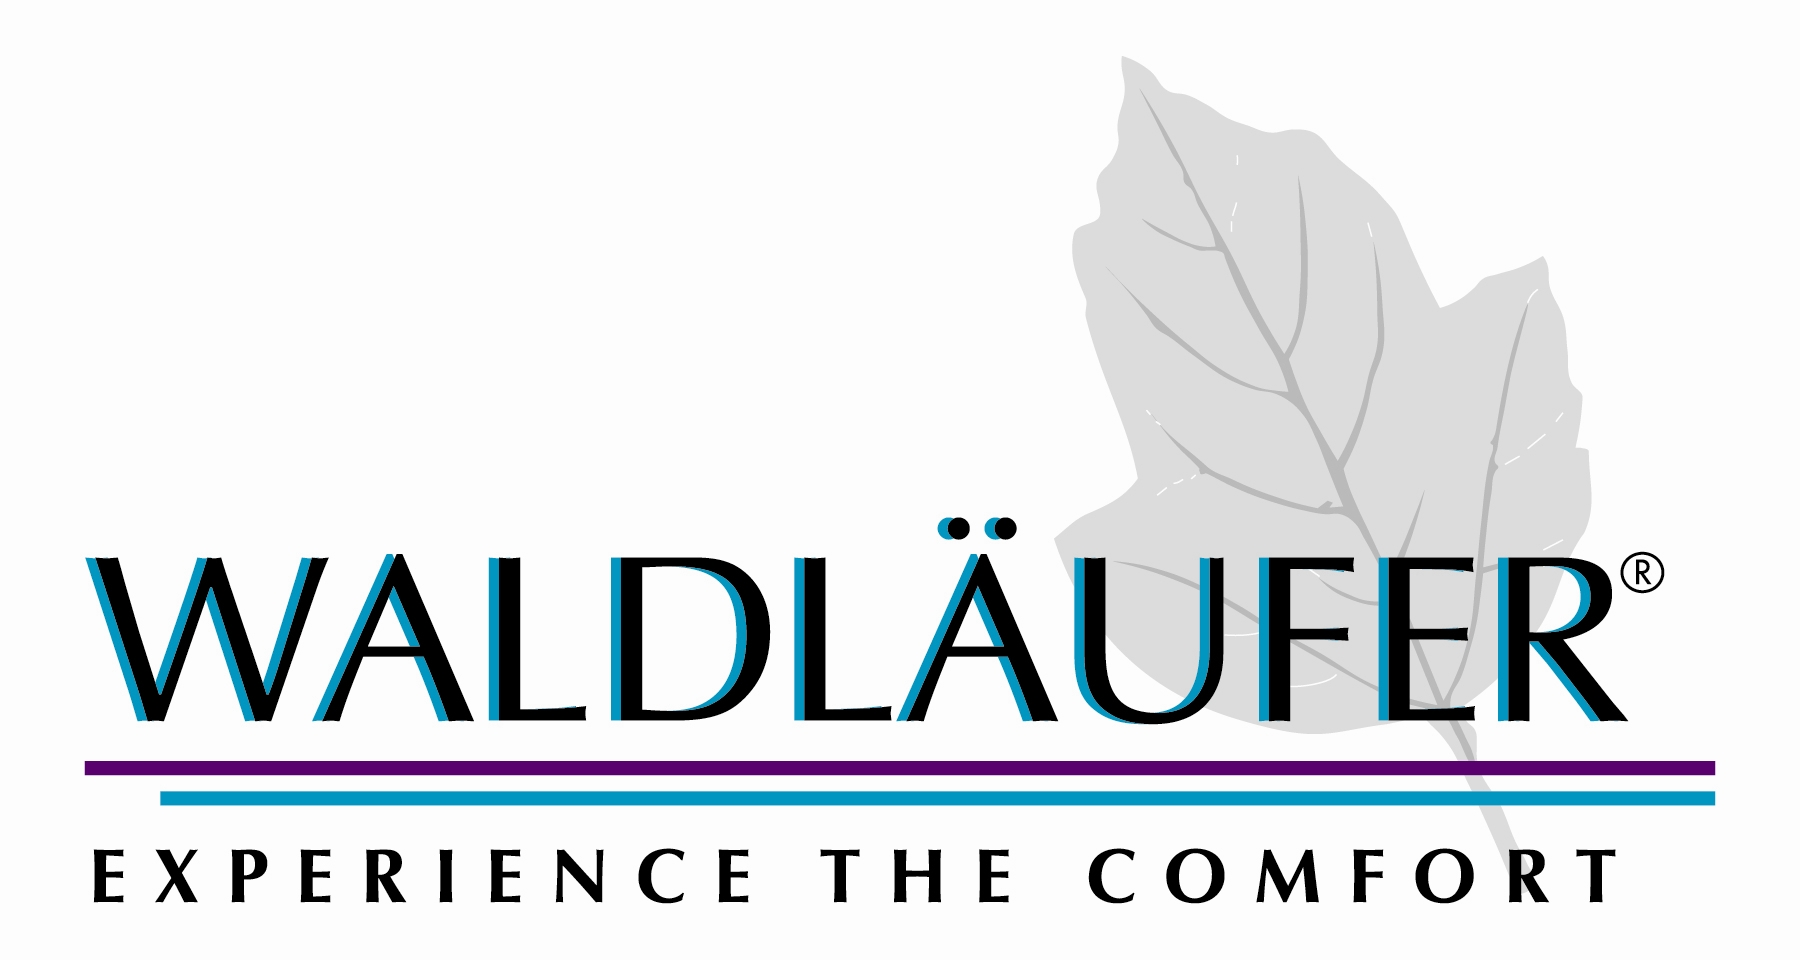 Waldlaufer Footwear